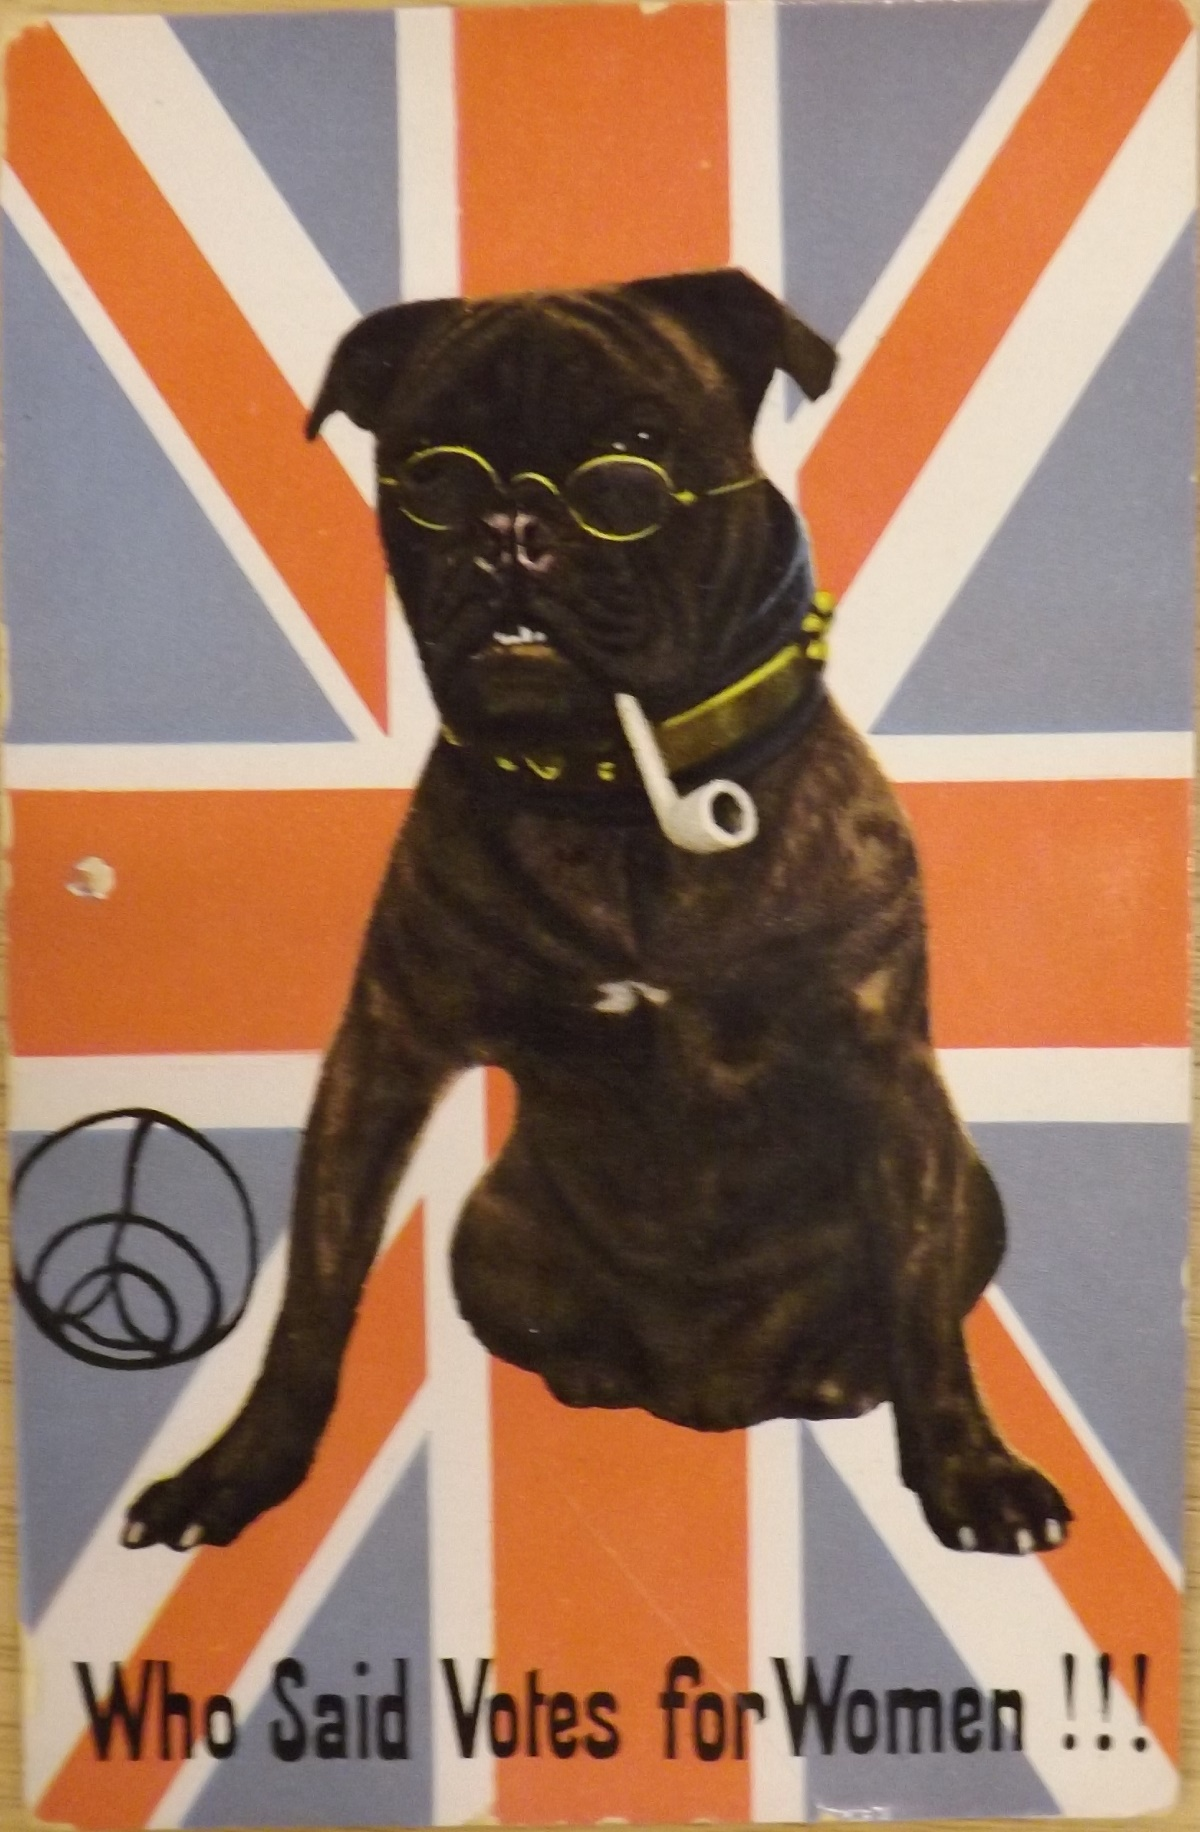 Political satirical card of the suffragette period - Bulldog smoking a pipe, on Union Jack background, with the caption 'Who said Votes for Women!!!'